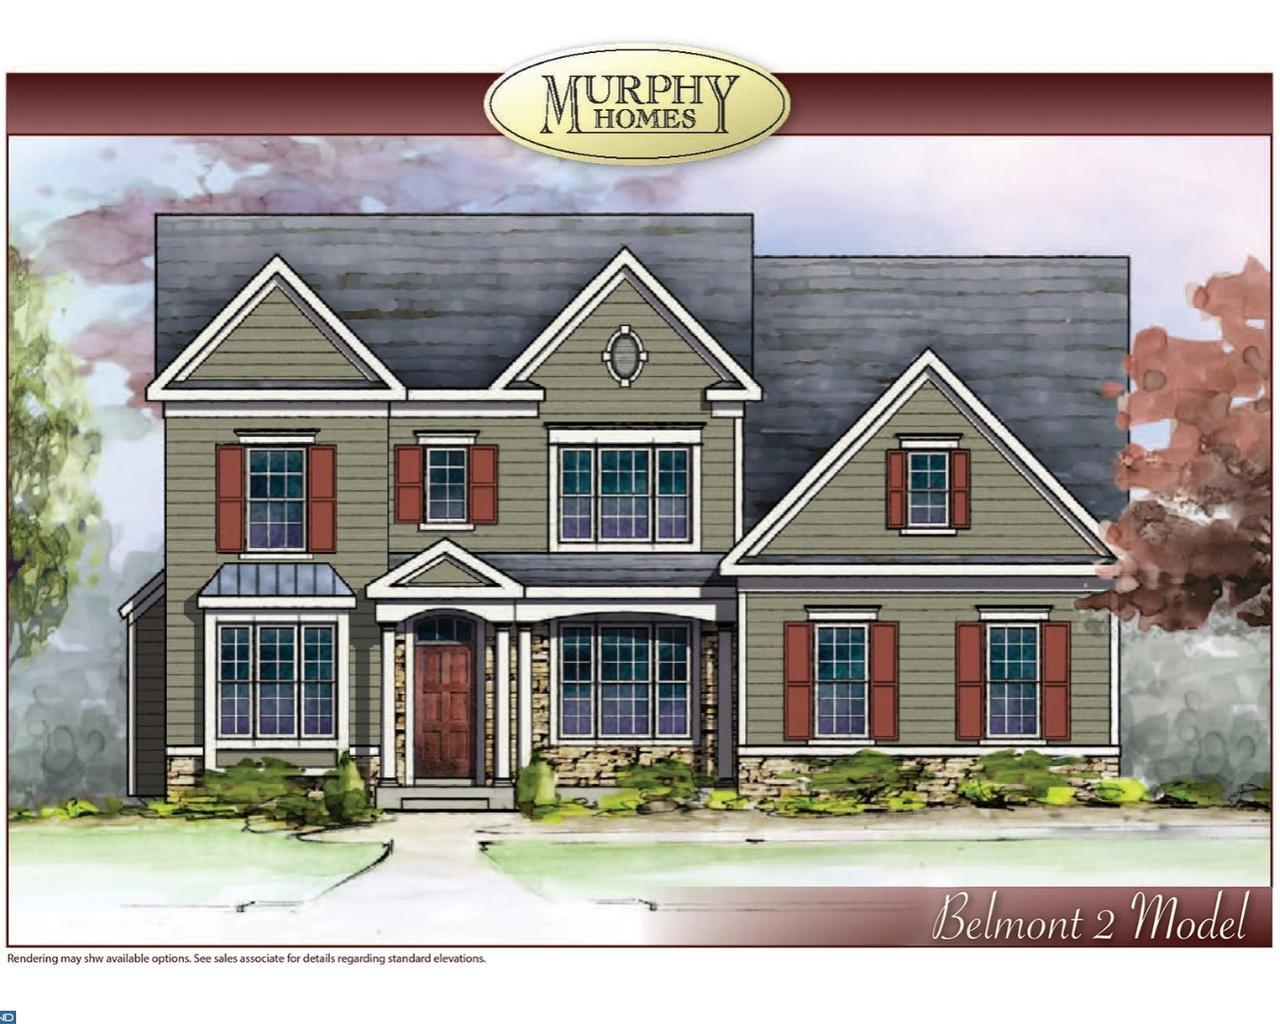 Murphy homes steeplechase model